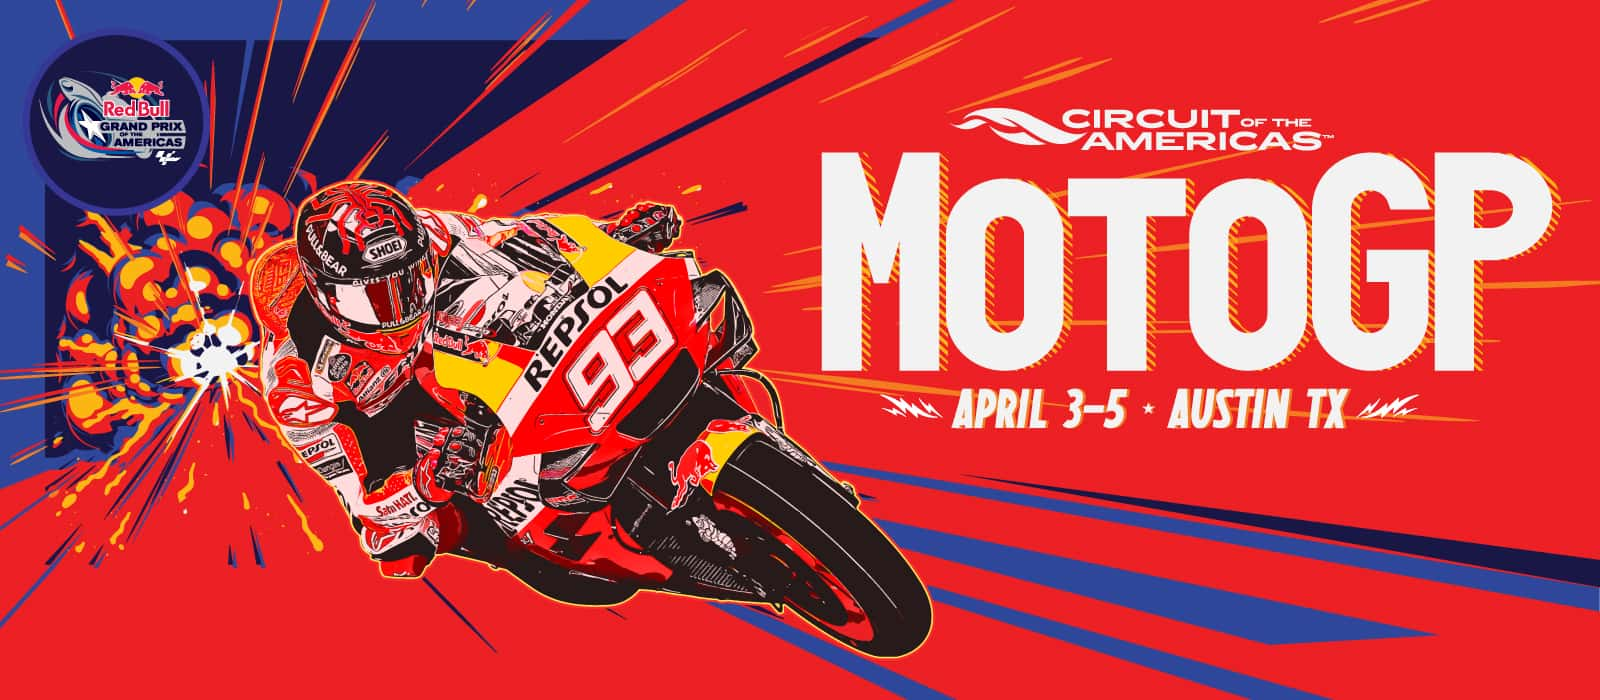 2020 MOTOGP RED BULL GRAND PRIX OF THE AMERICAS :: APRIL 3 - 5, 2020